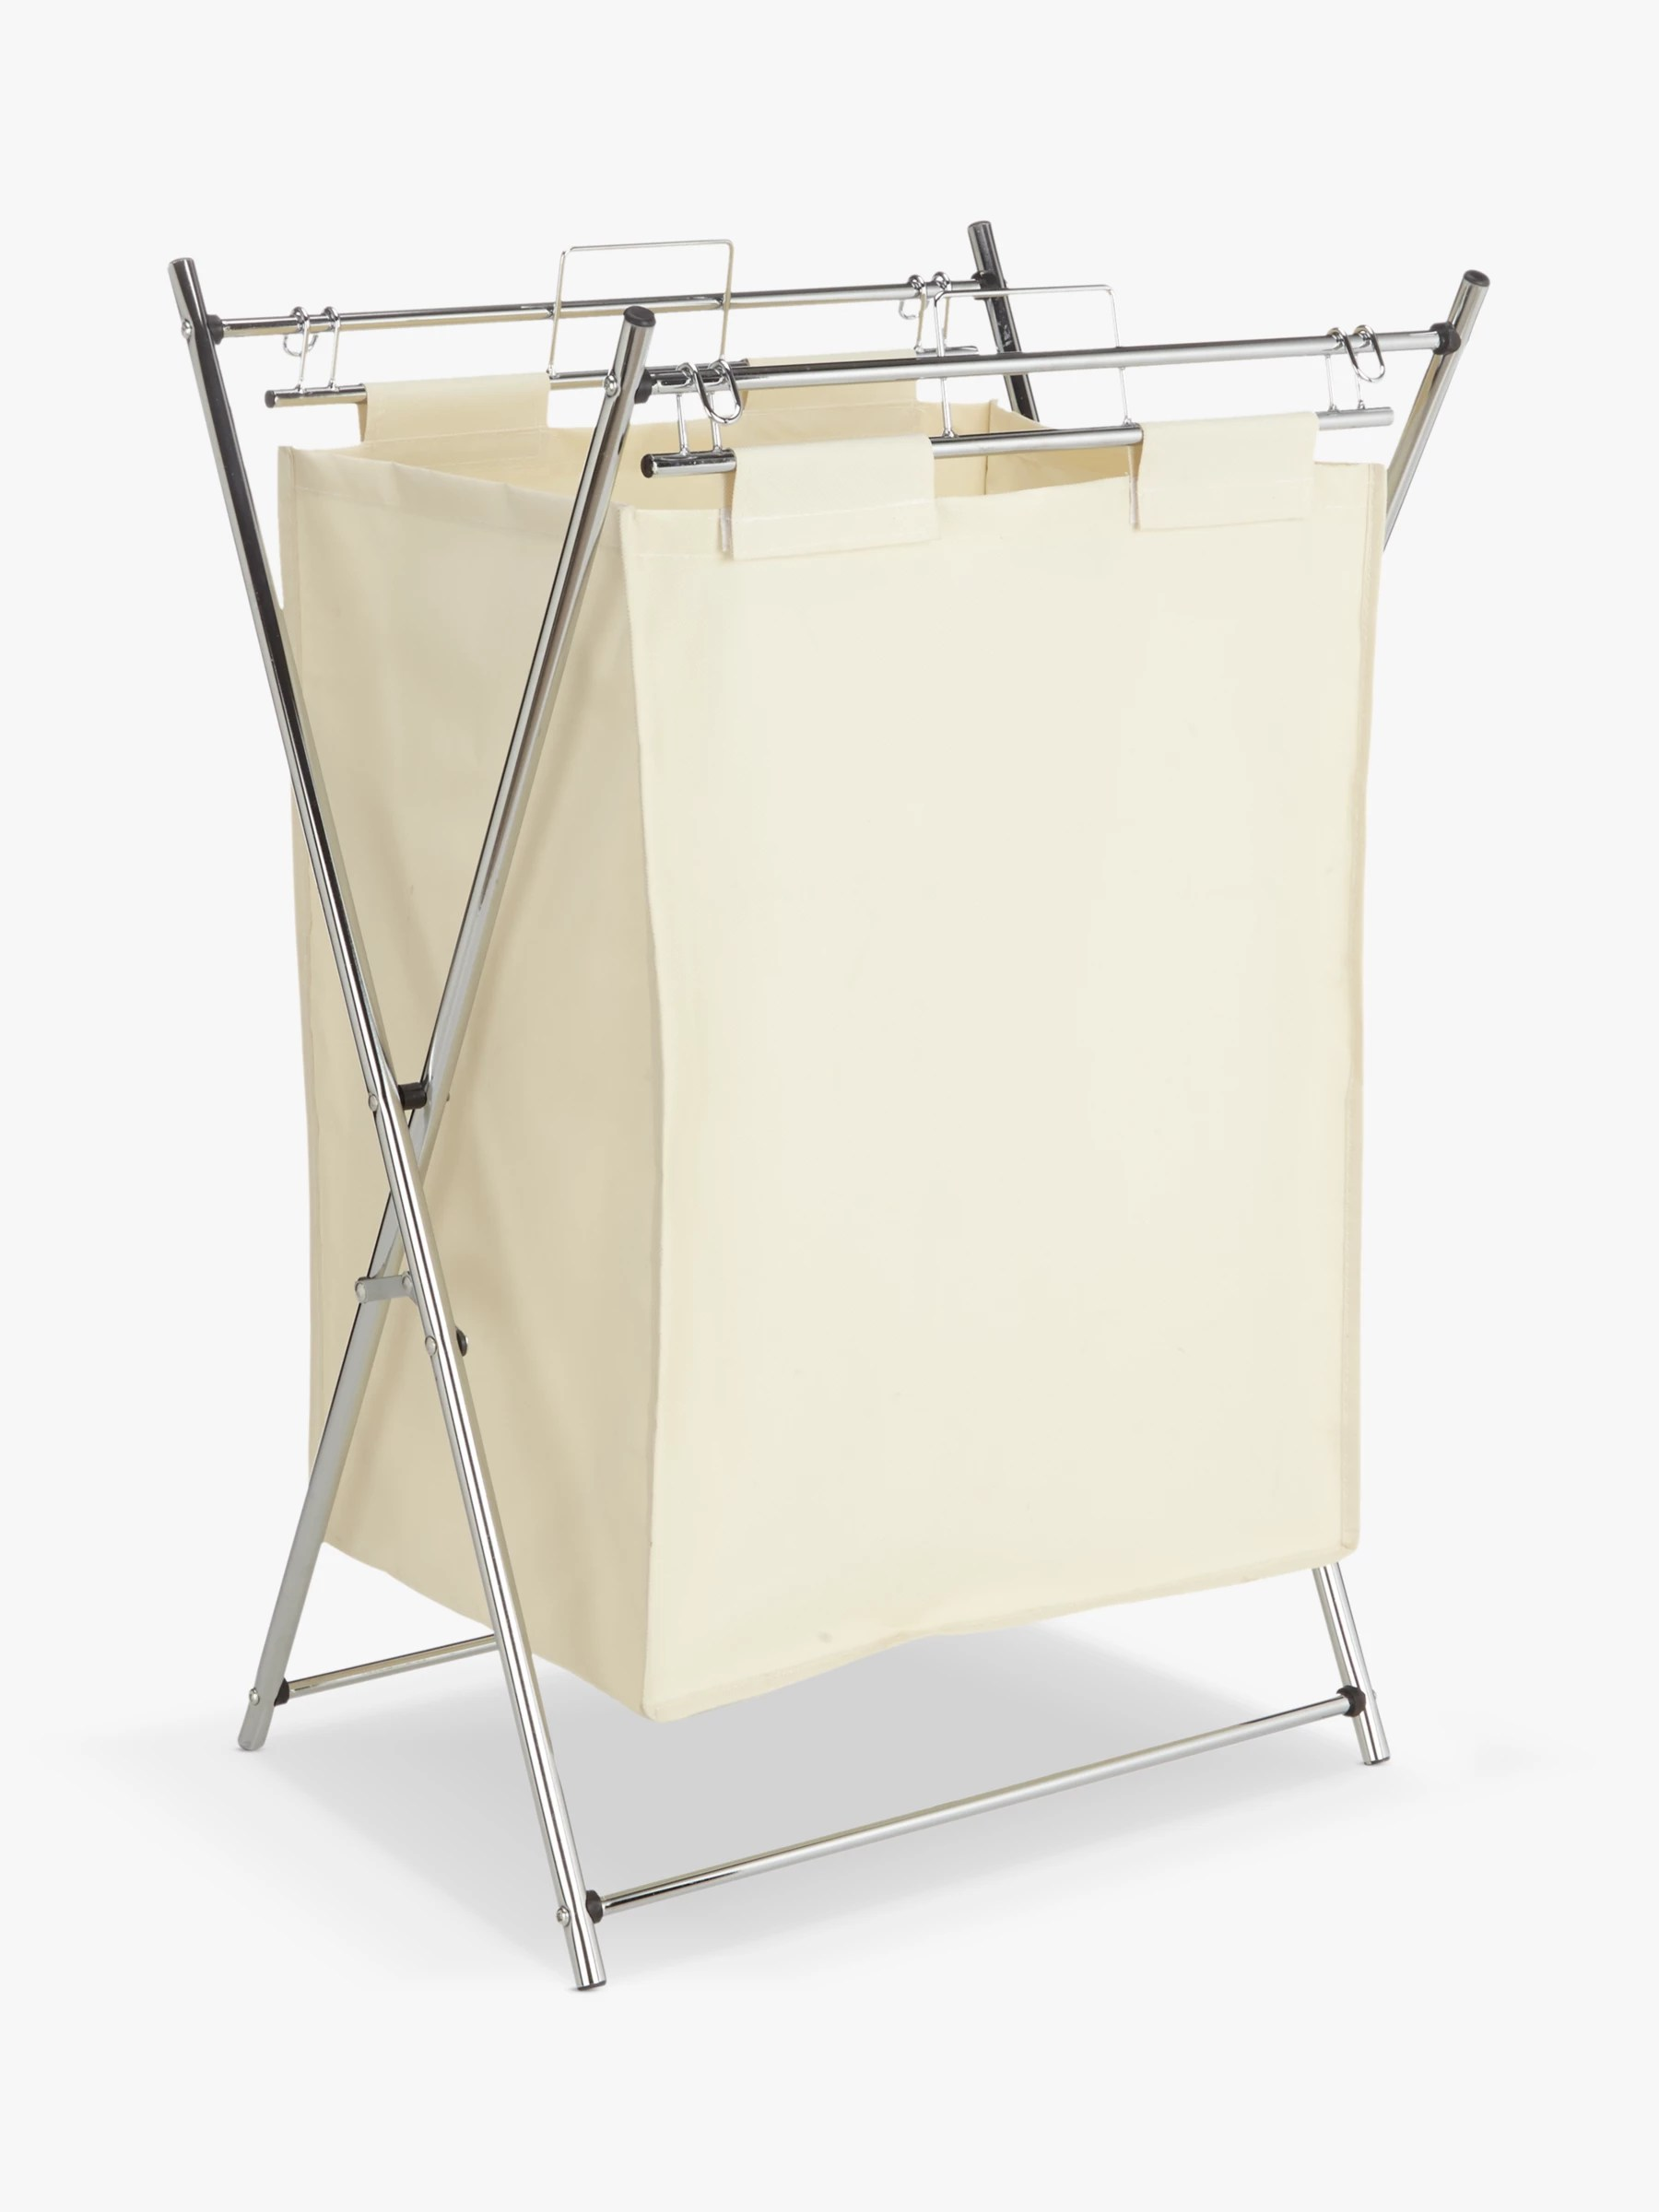 Chrome Laundry Basket John Lewis And Partners The Basics Chrome Foldable Laundry